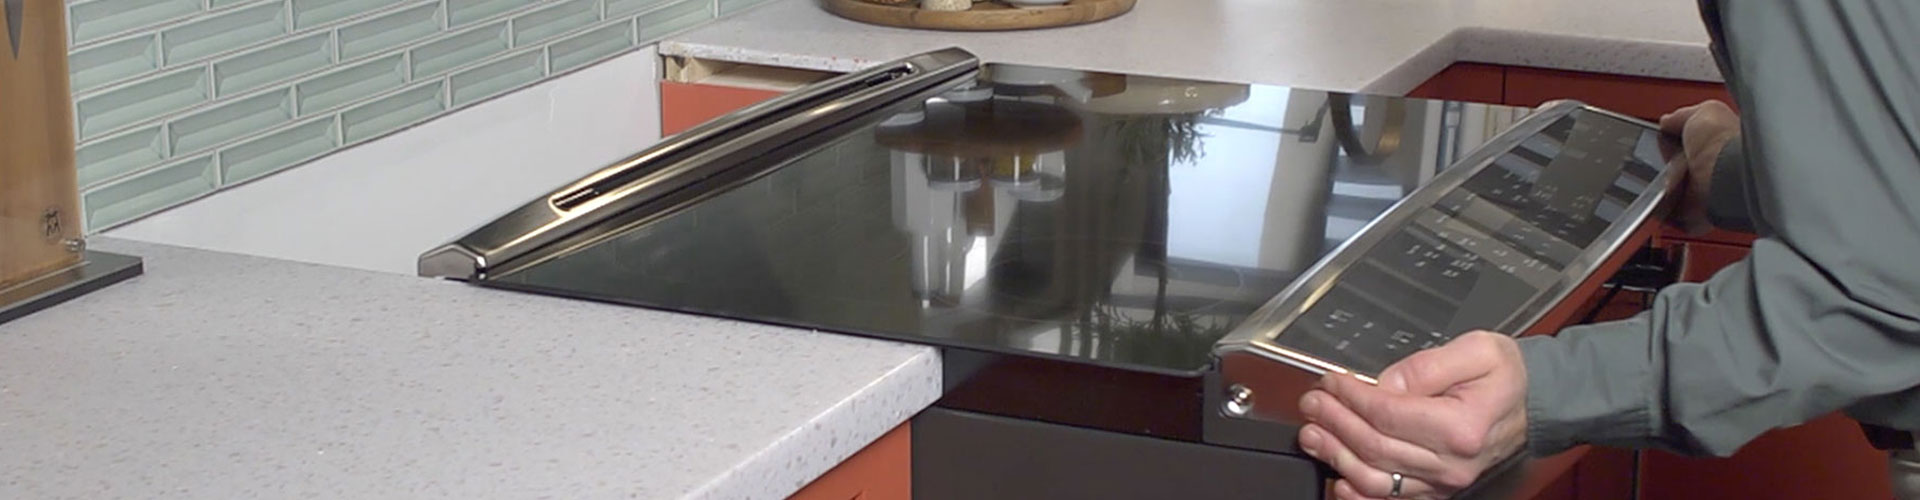 Oven and Cooktop Repairs